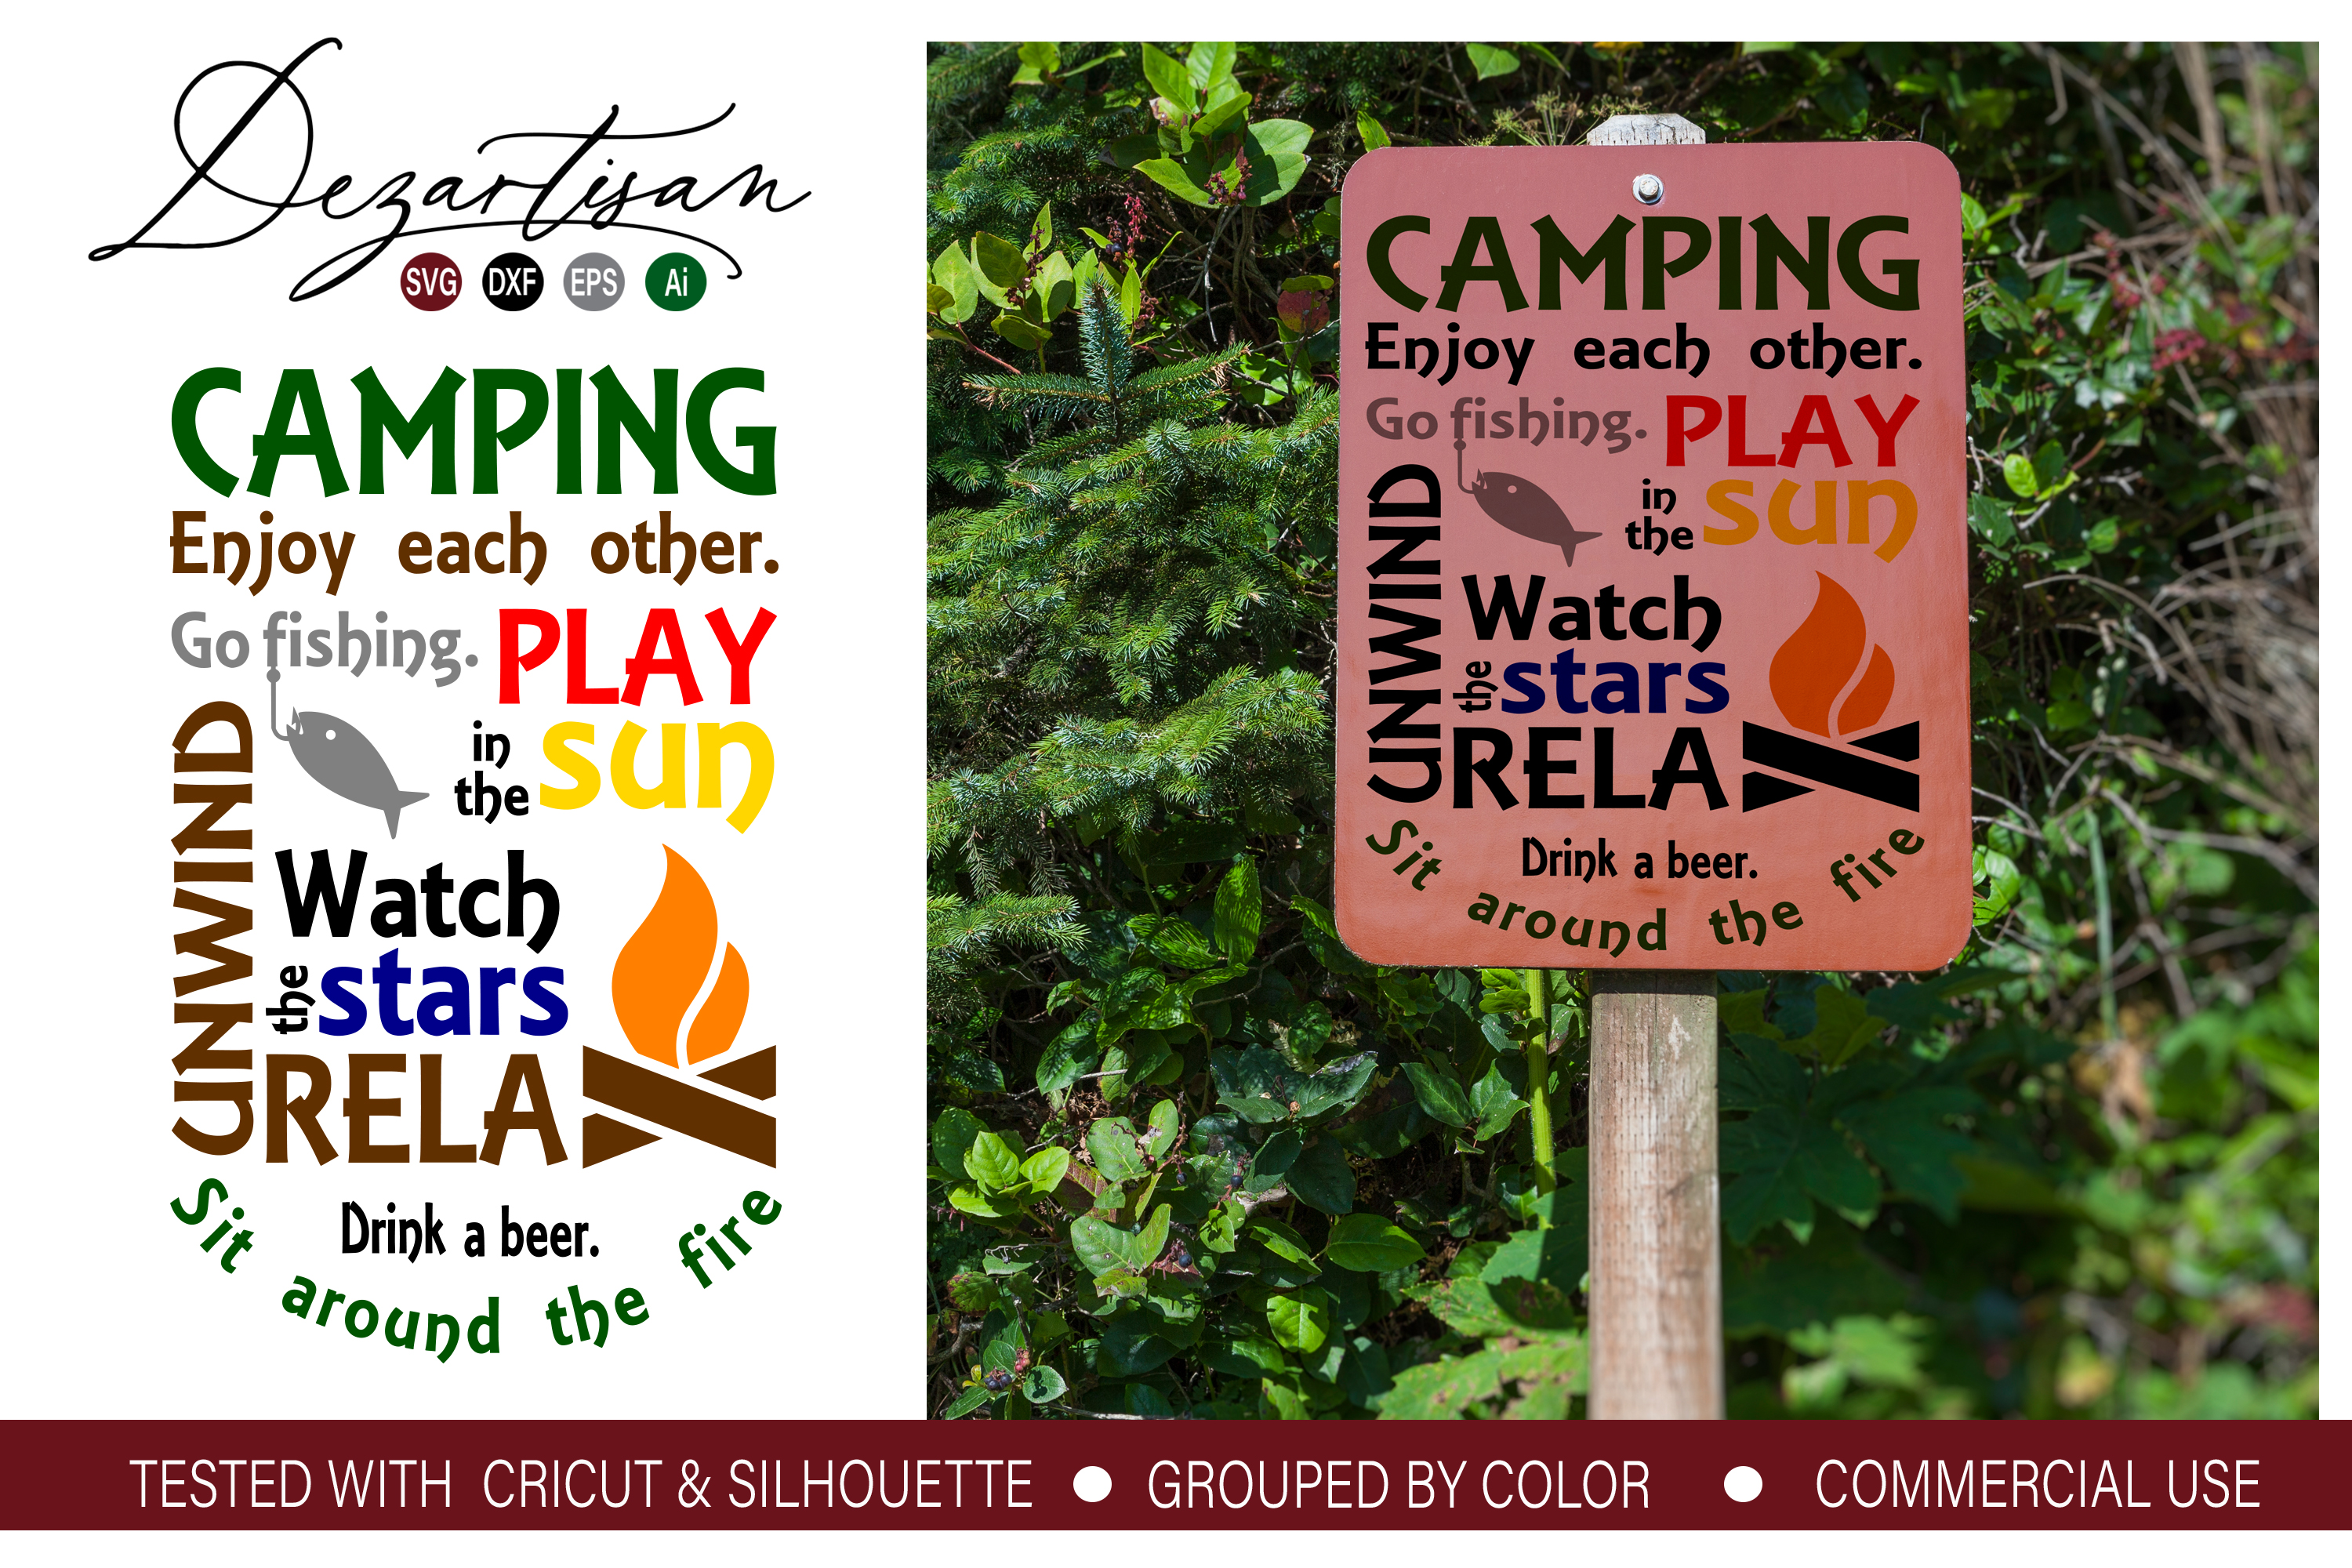 Camping Relax Fire Fishing Subway Art SVG DXF cut file example image 1